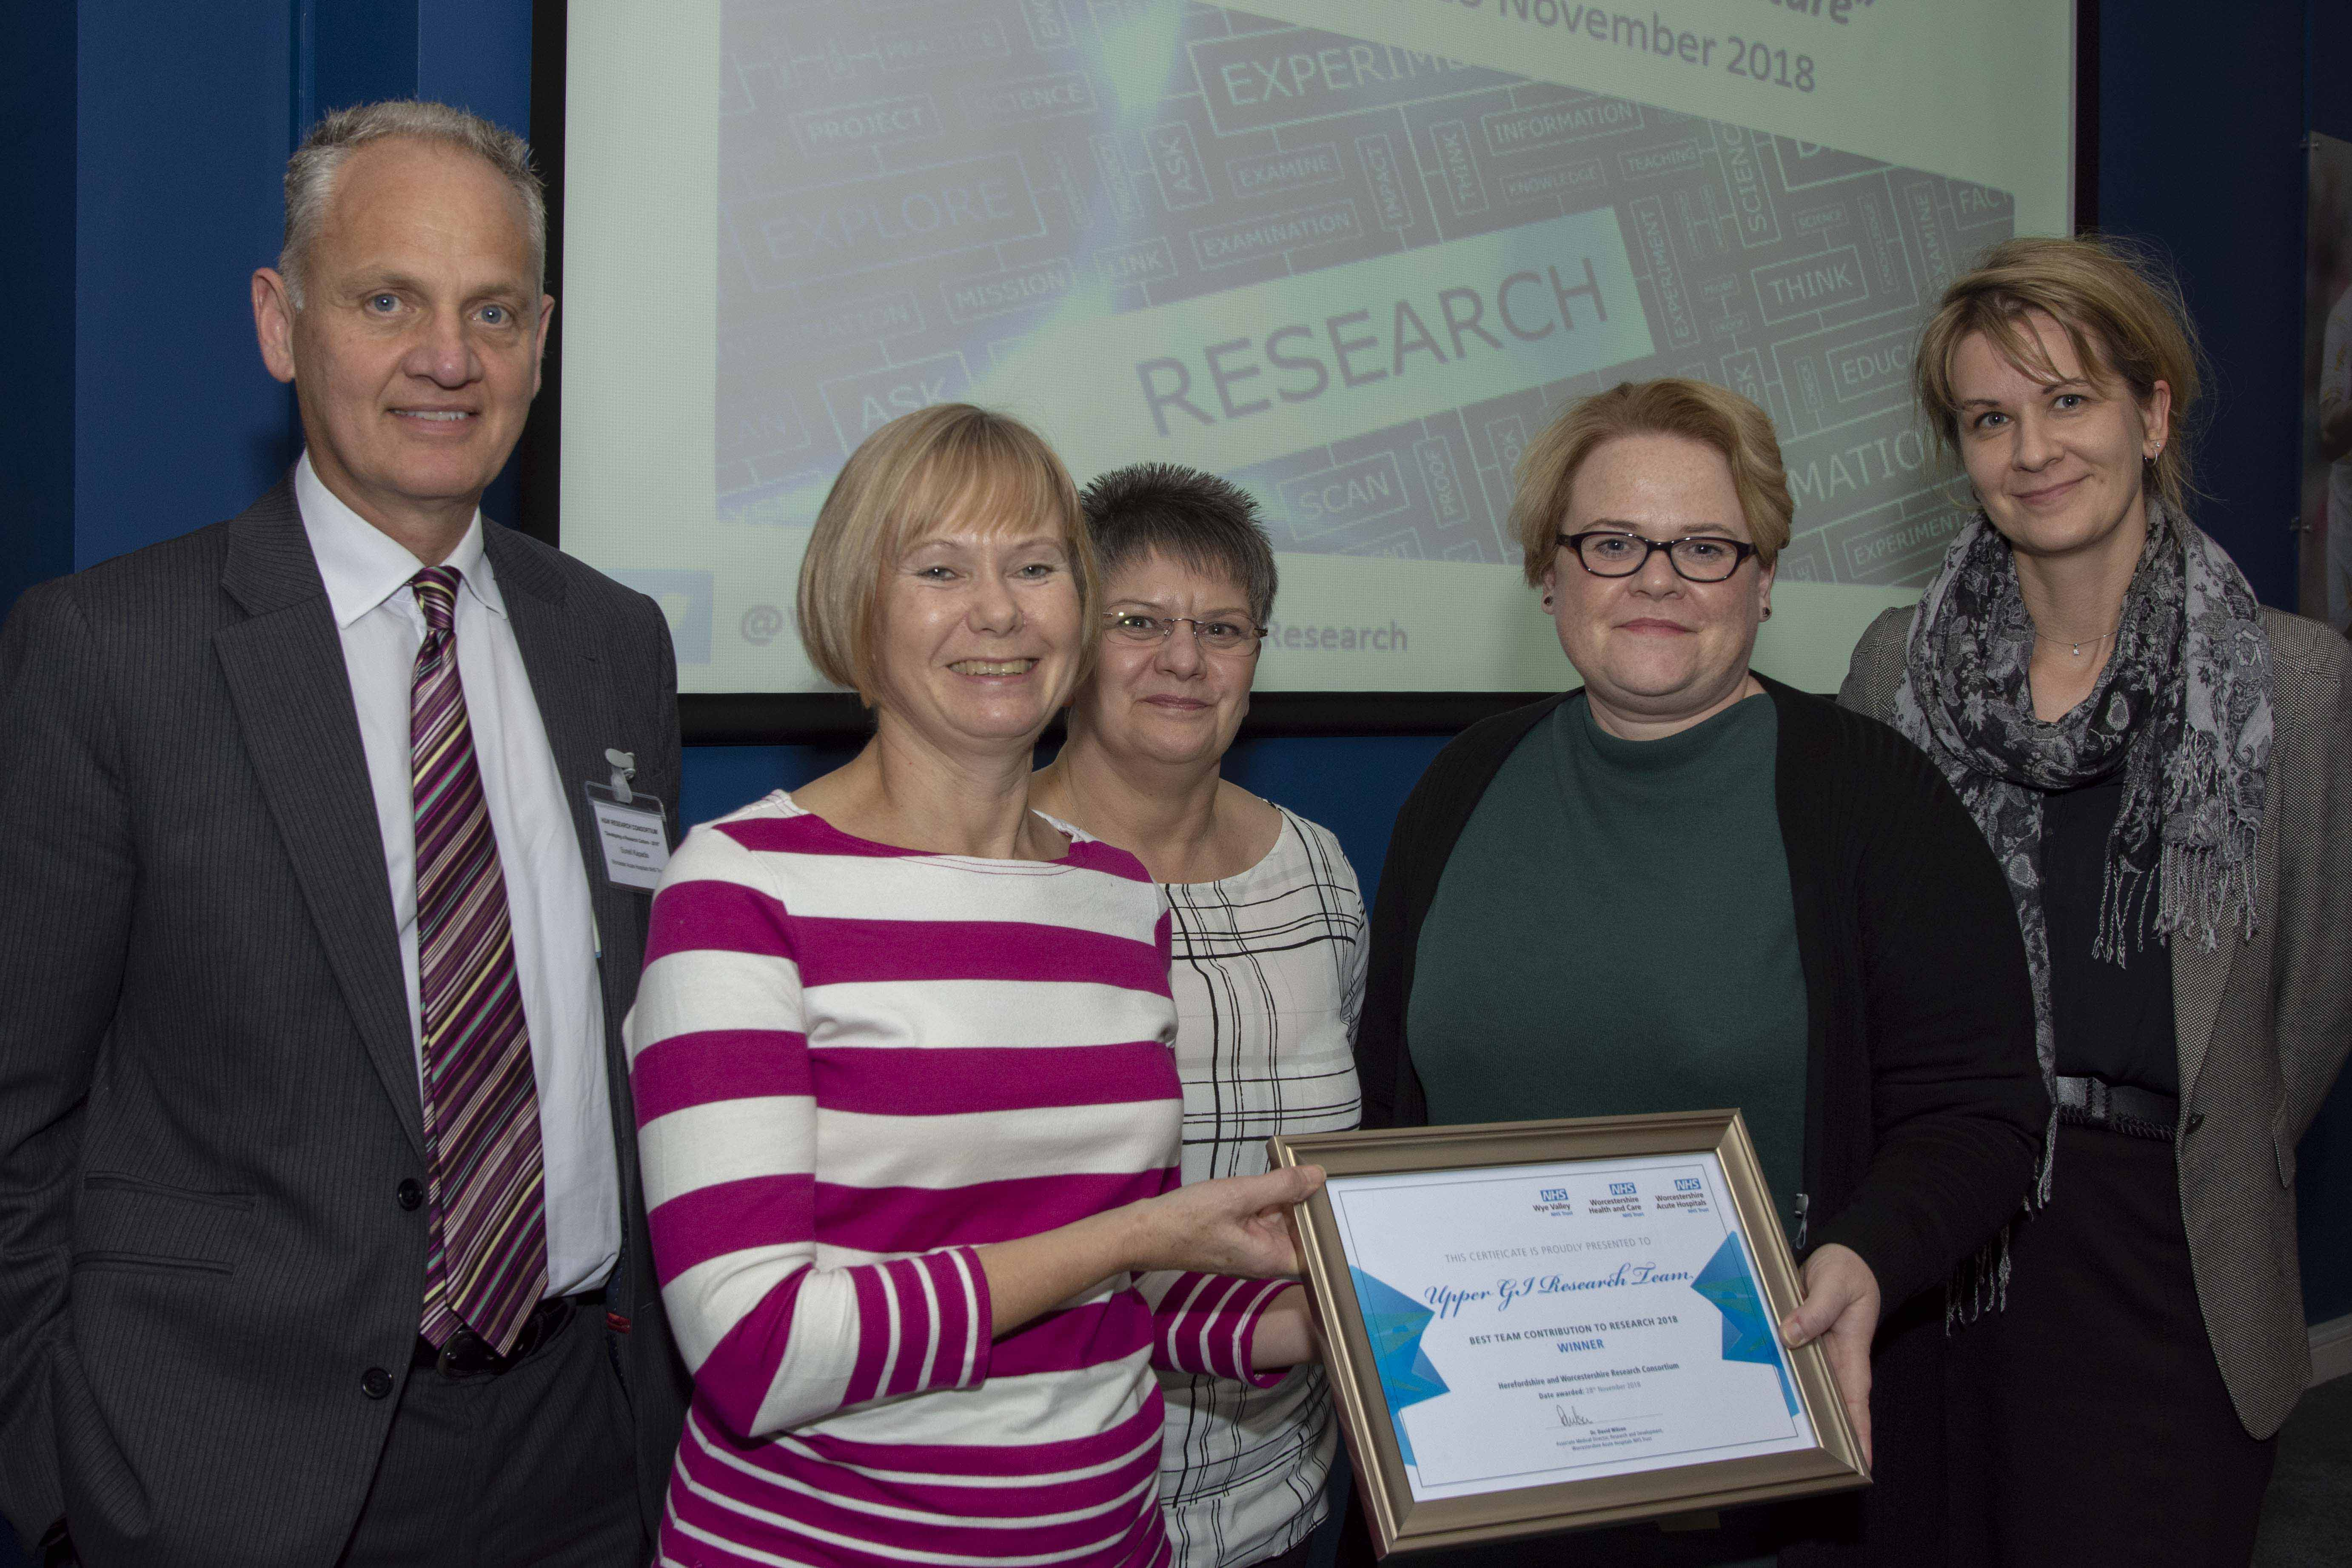 Research Awards Event 3